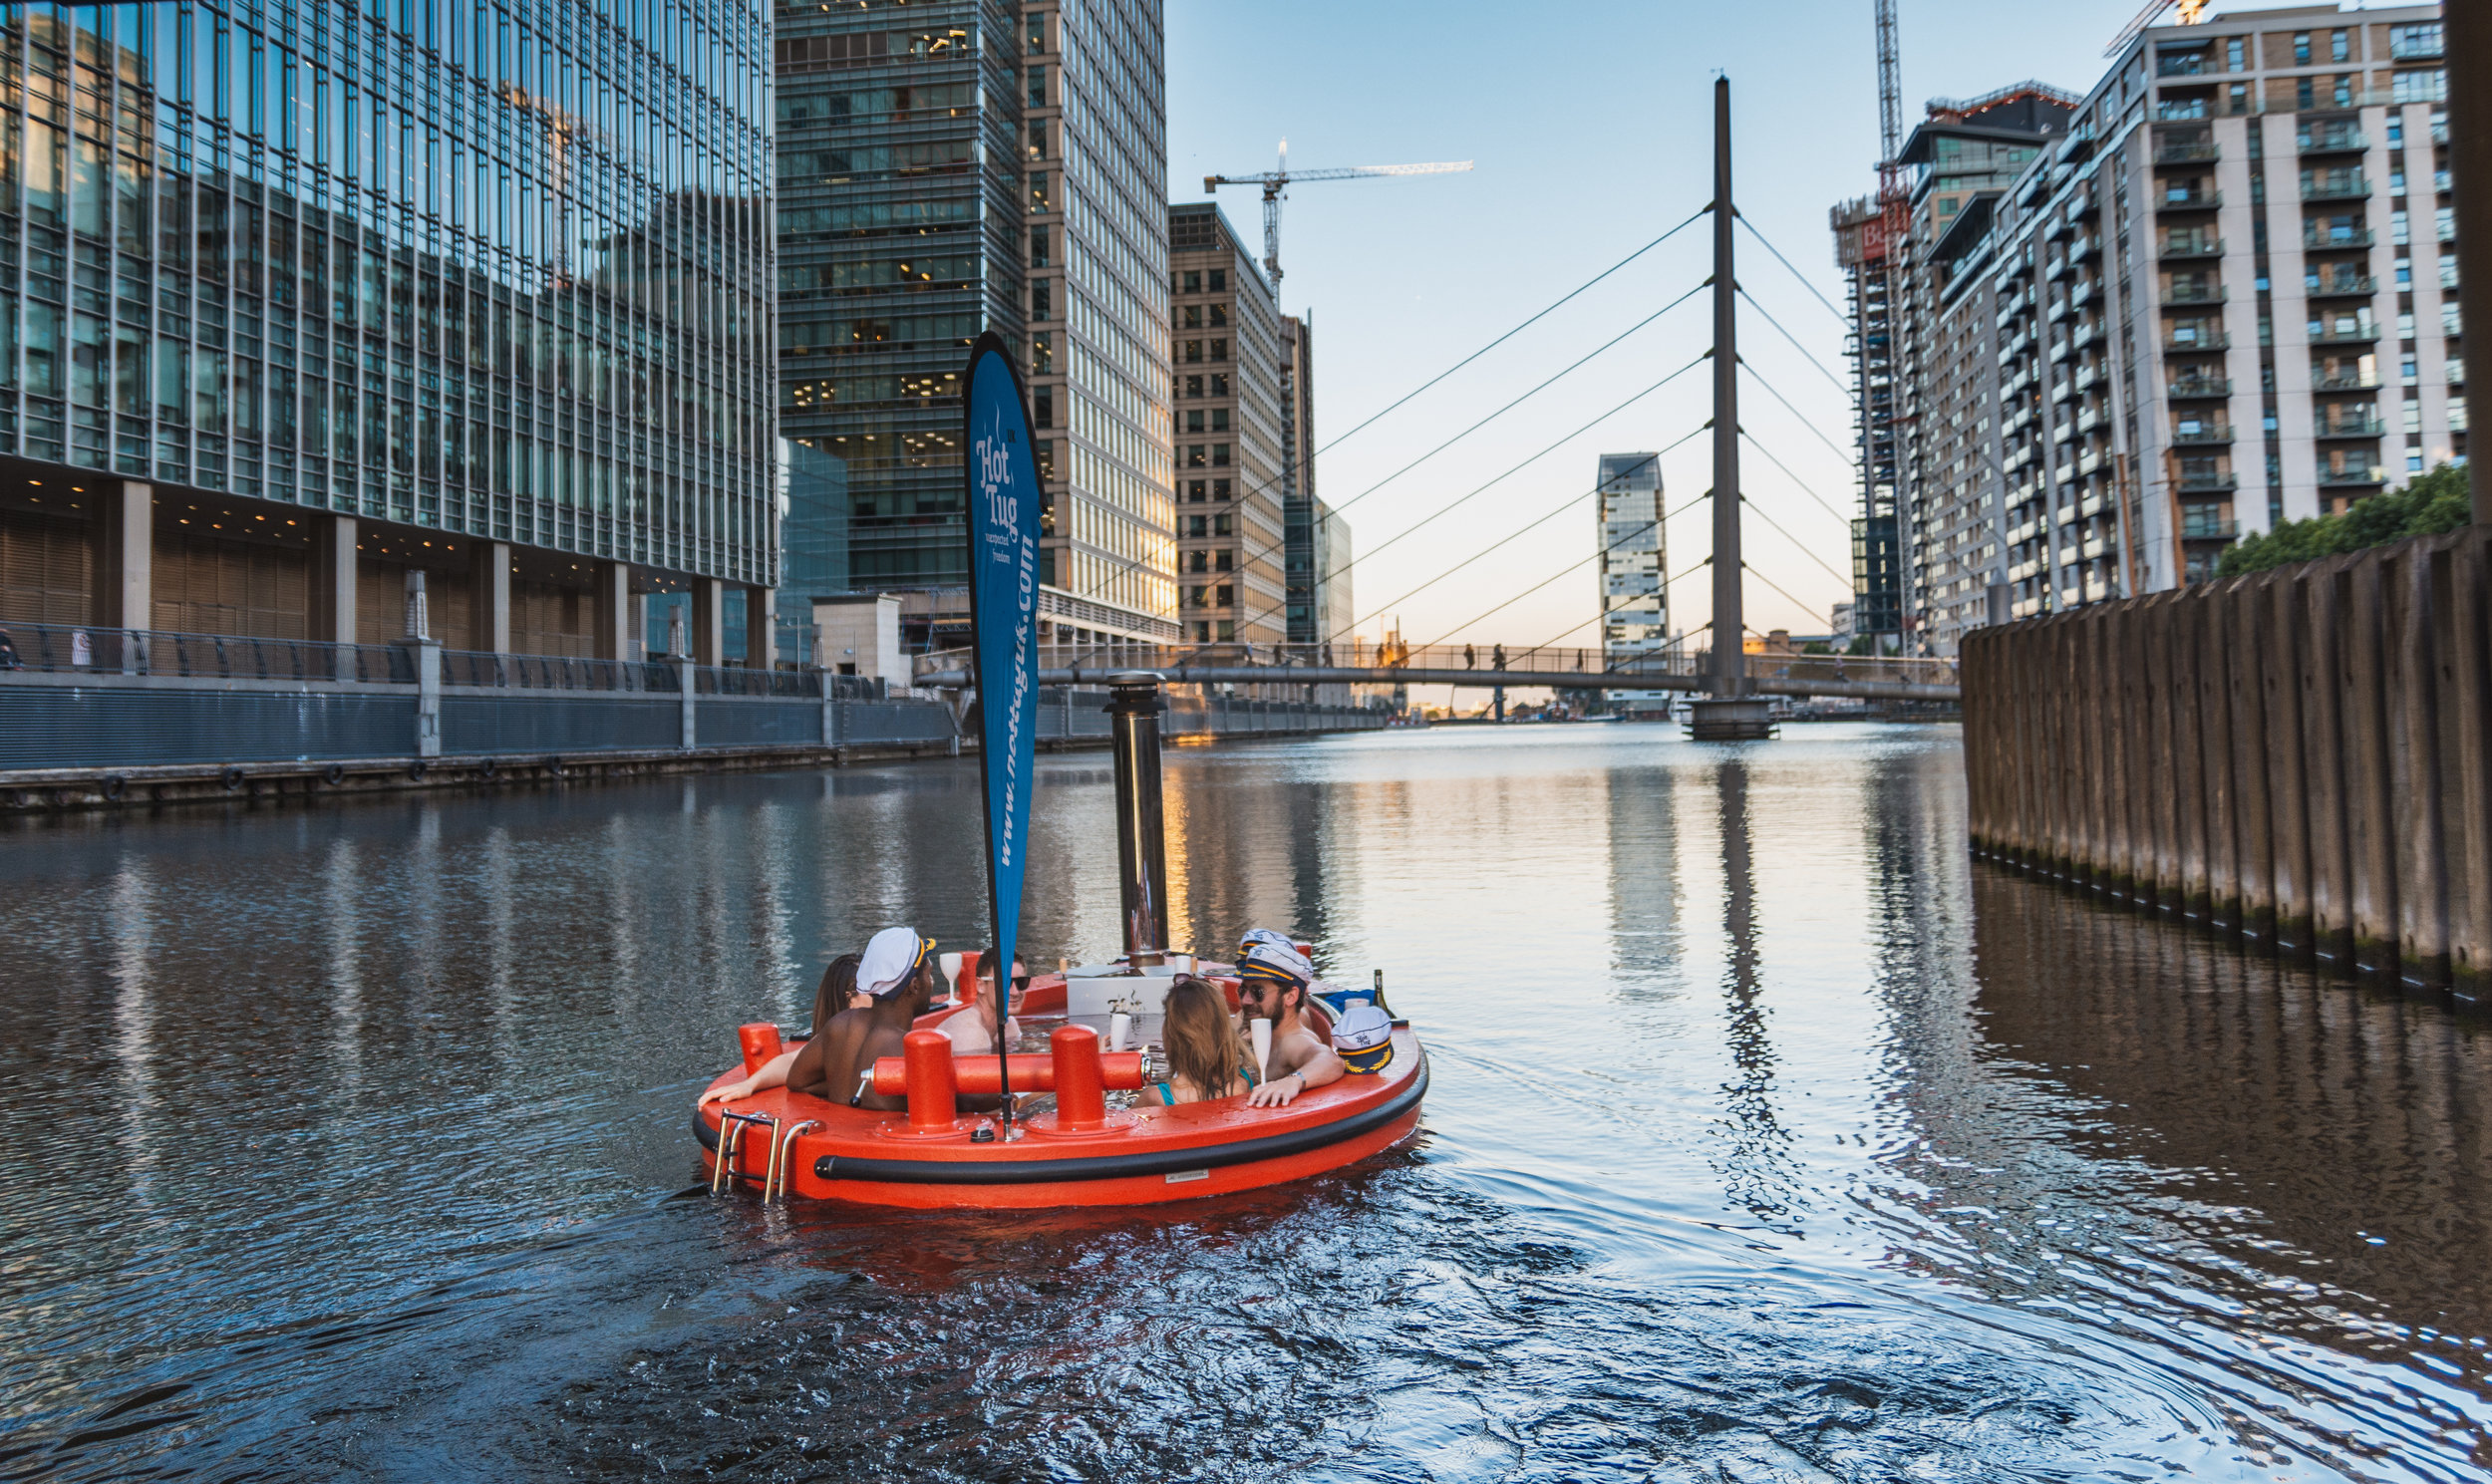 West India Quay/ Canary Wharf - Sailing between some of Europe's tallest buildings is quite the spectacle. An ideal base for groups. We also allow music at this location.